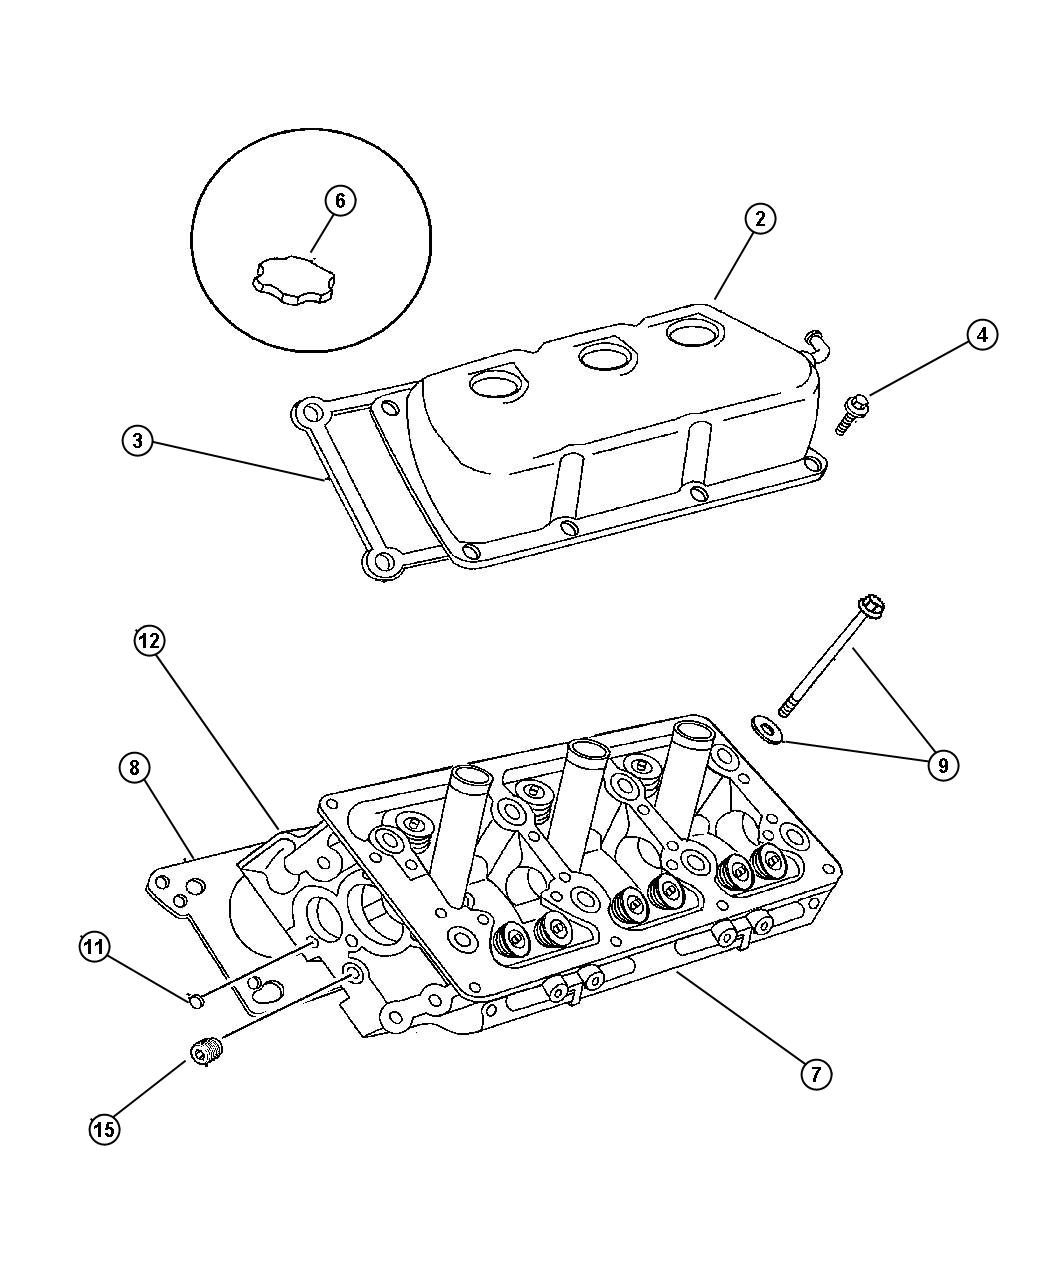 Sebring 2004 3 0 engine diagram together with 97 geo metro stereo wiring diagram in addition